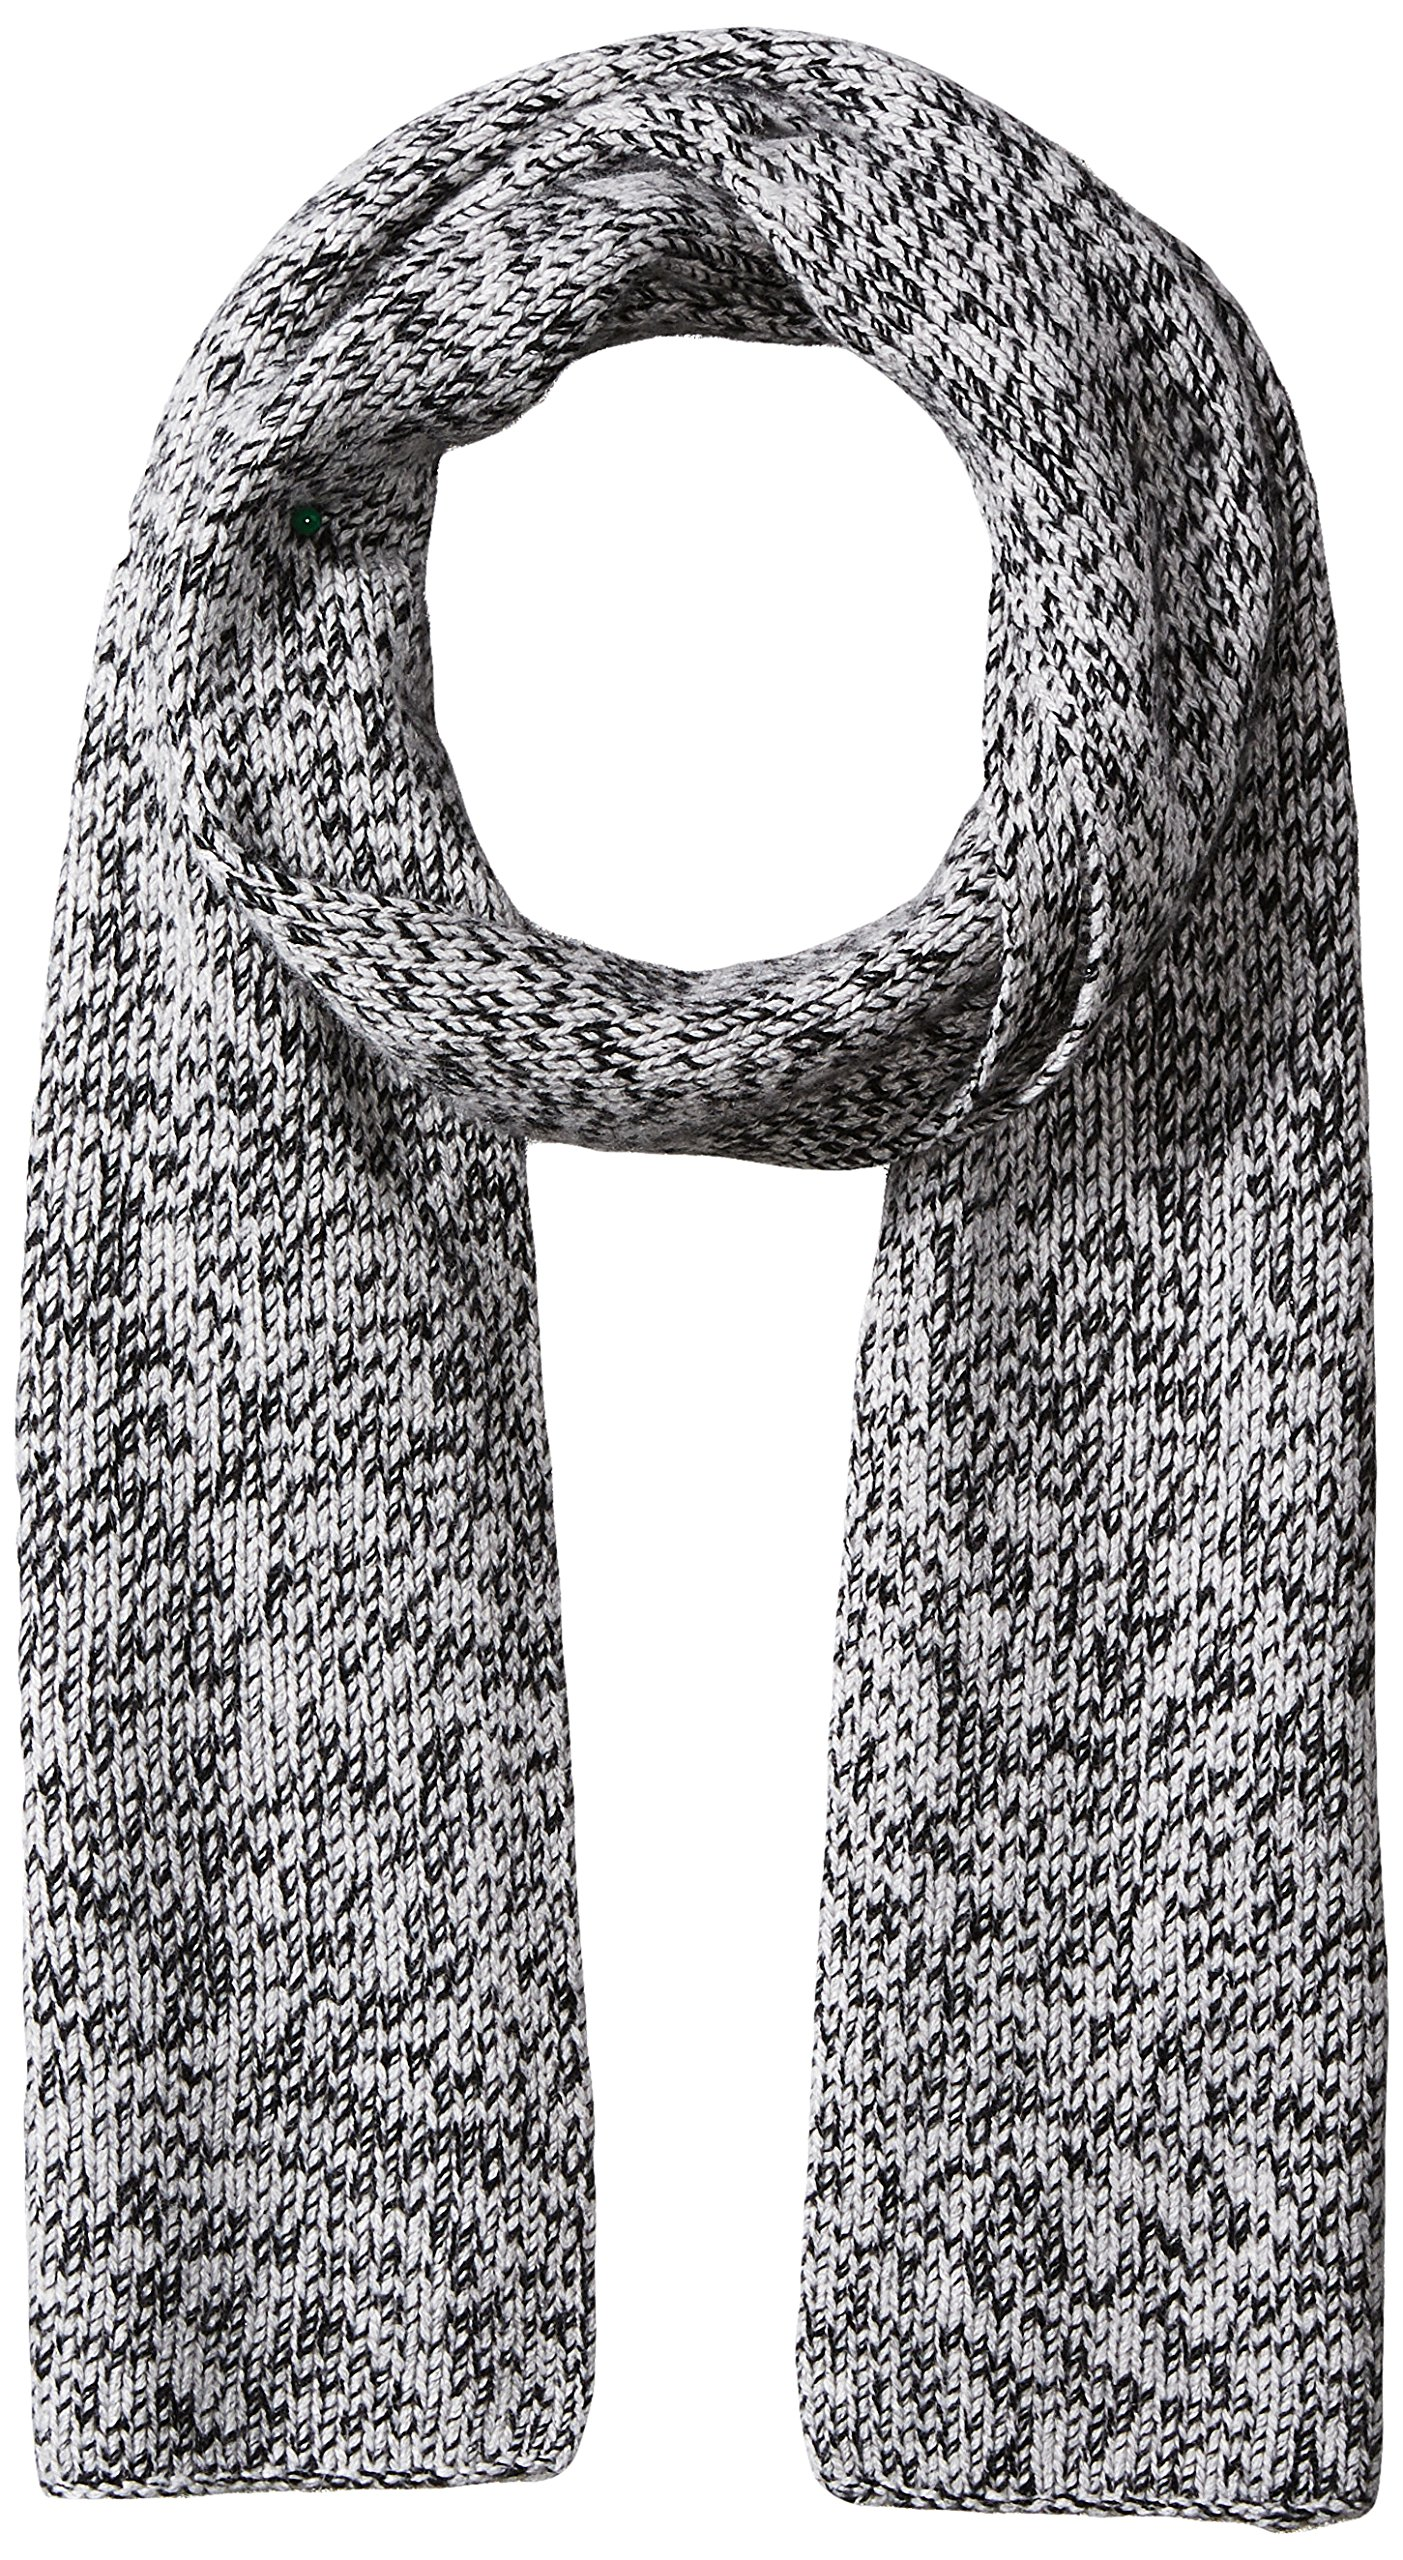 Williams Cashmere Men's 100% Cashmere Jersey Marl Scarf, Black, One Size